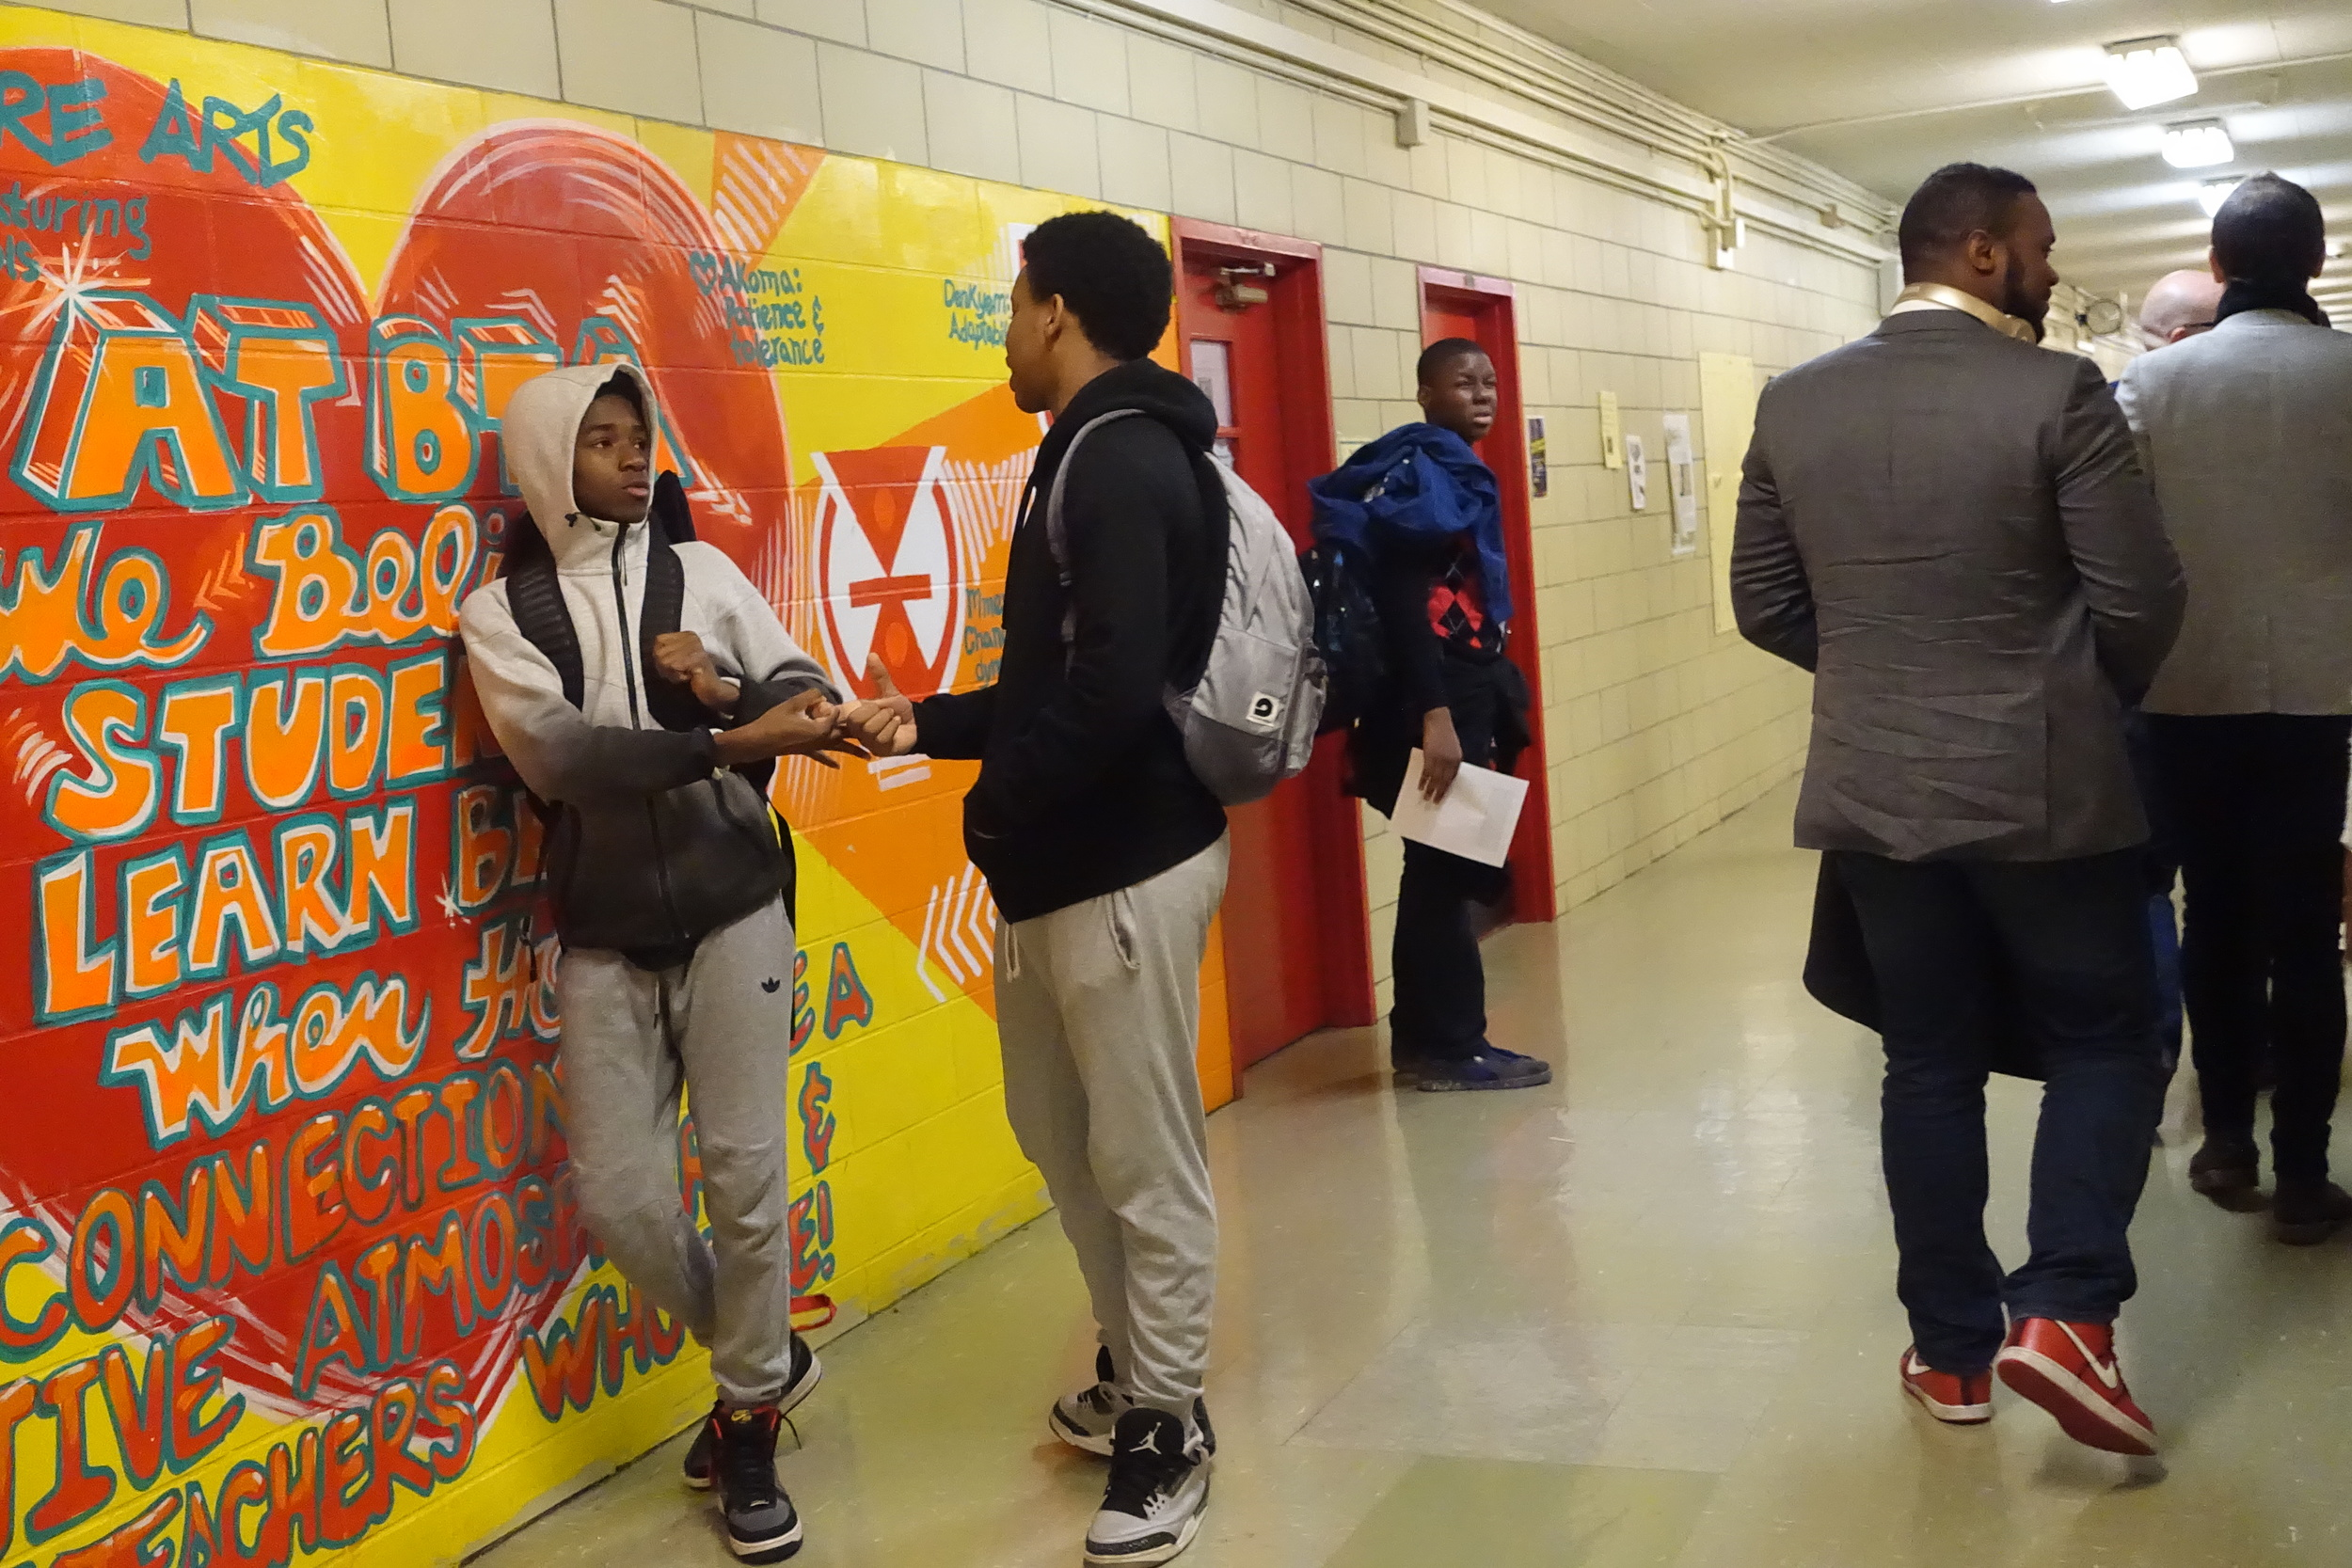 """As we wander the mural-lined walls, Mr. Ward's positive presence was impossible to ignore. """"Hey, Ward!"""" one passing student shouts out. """"What up, Ward?"""" another stays as she delivers a high-five. It seemed he could barely walk five steps without a student sharing their affection. David explained to us that he wants to be a friend to his students and has an open door policy. The effect is obvious. """"Sometimes students stop by just to see what I have in the fridge."""""""